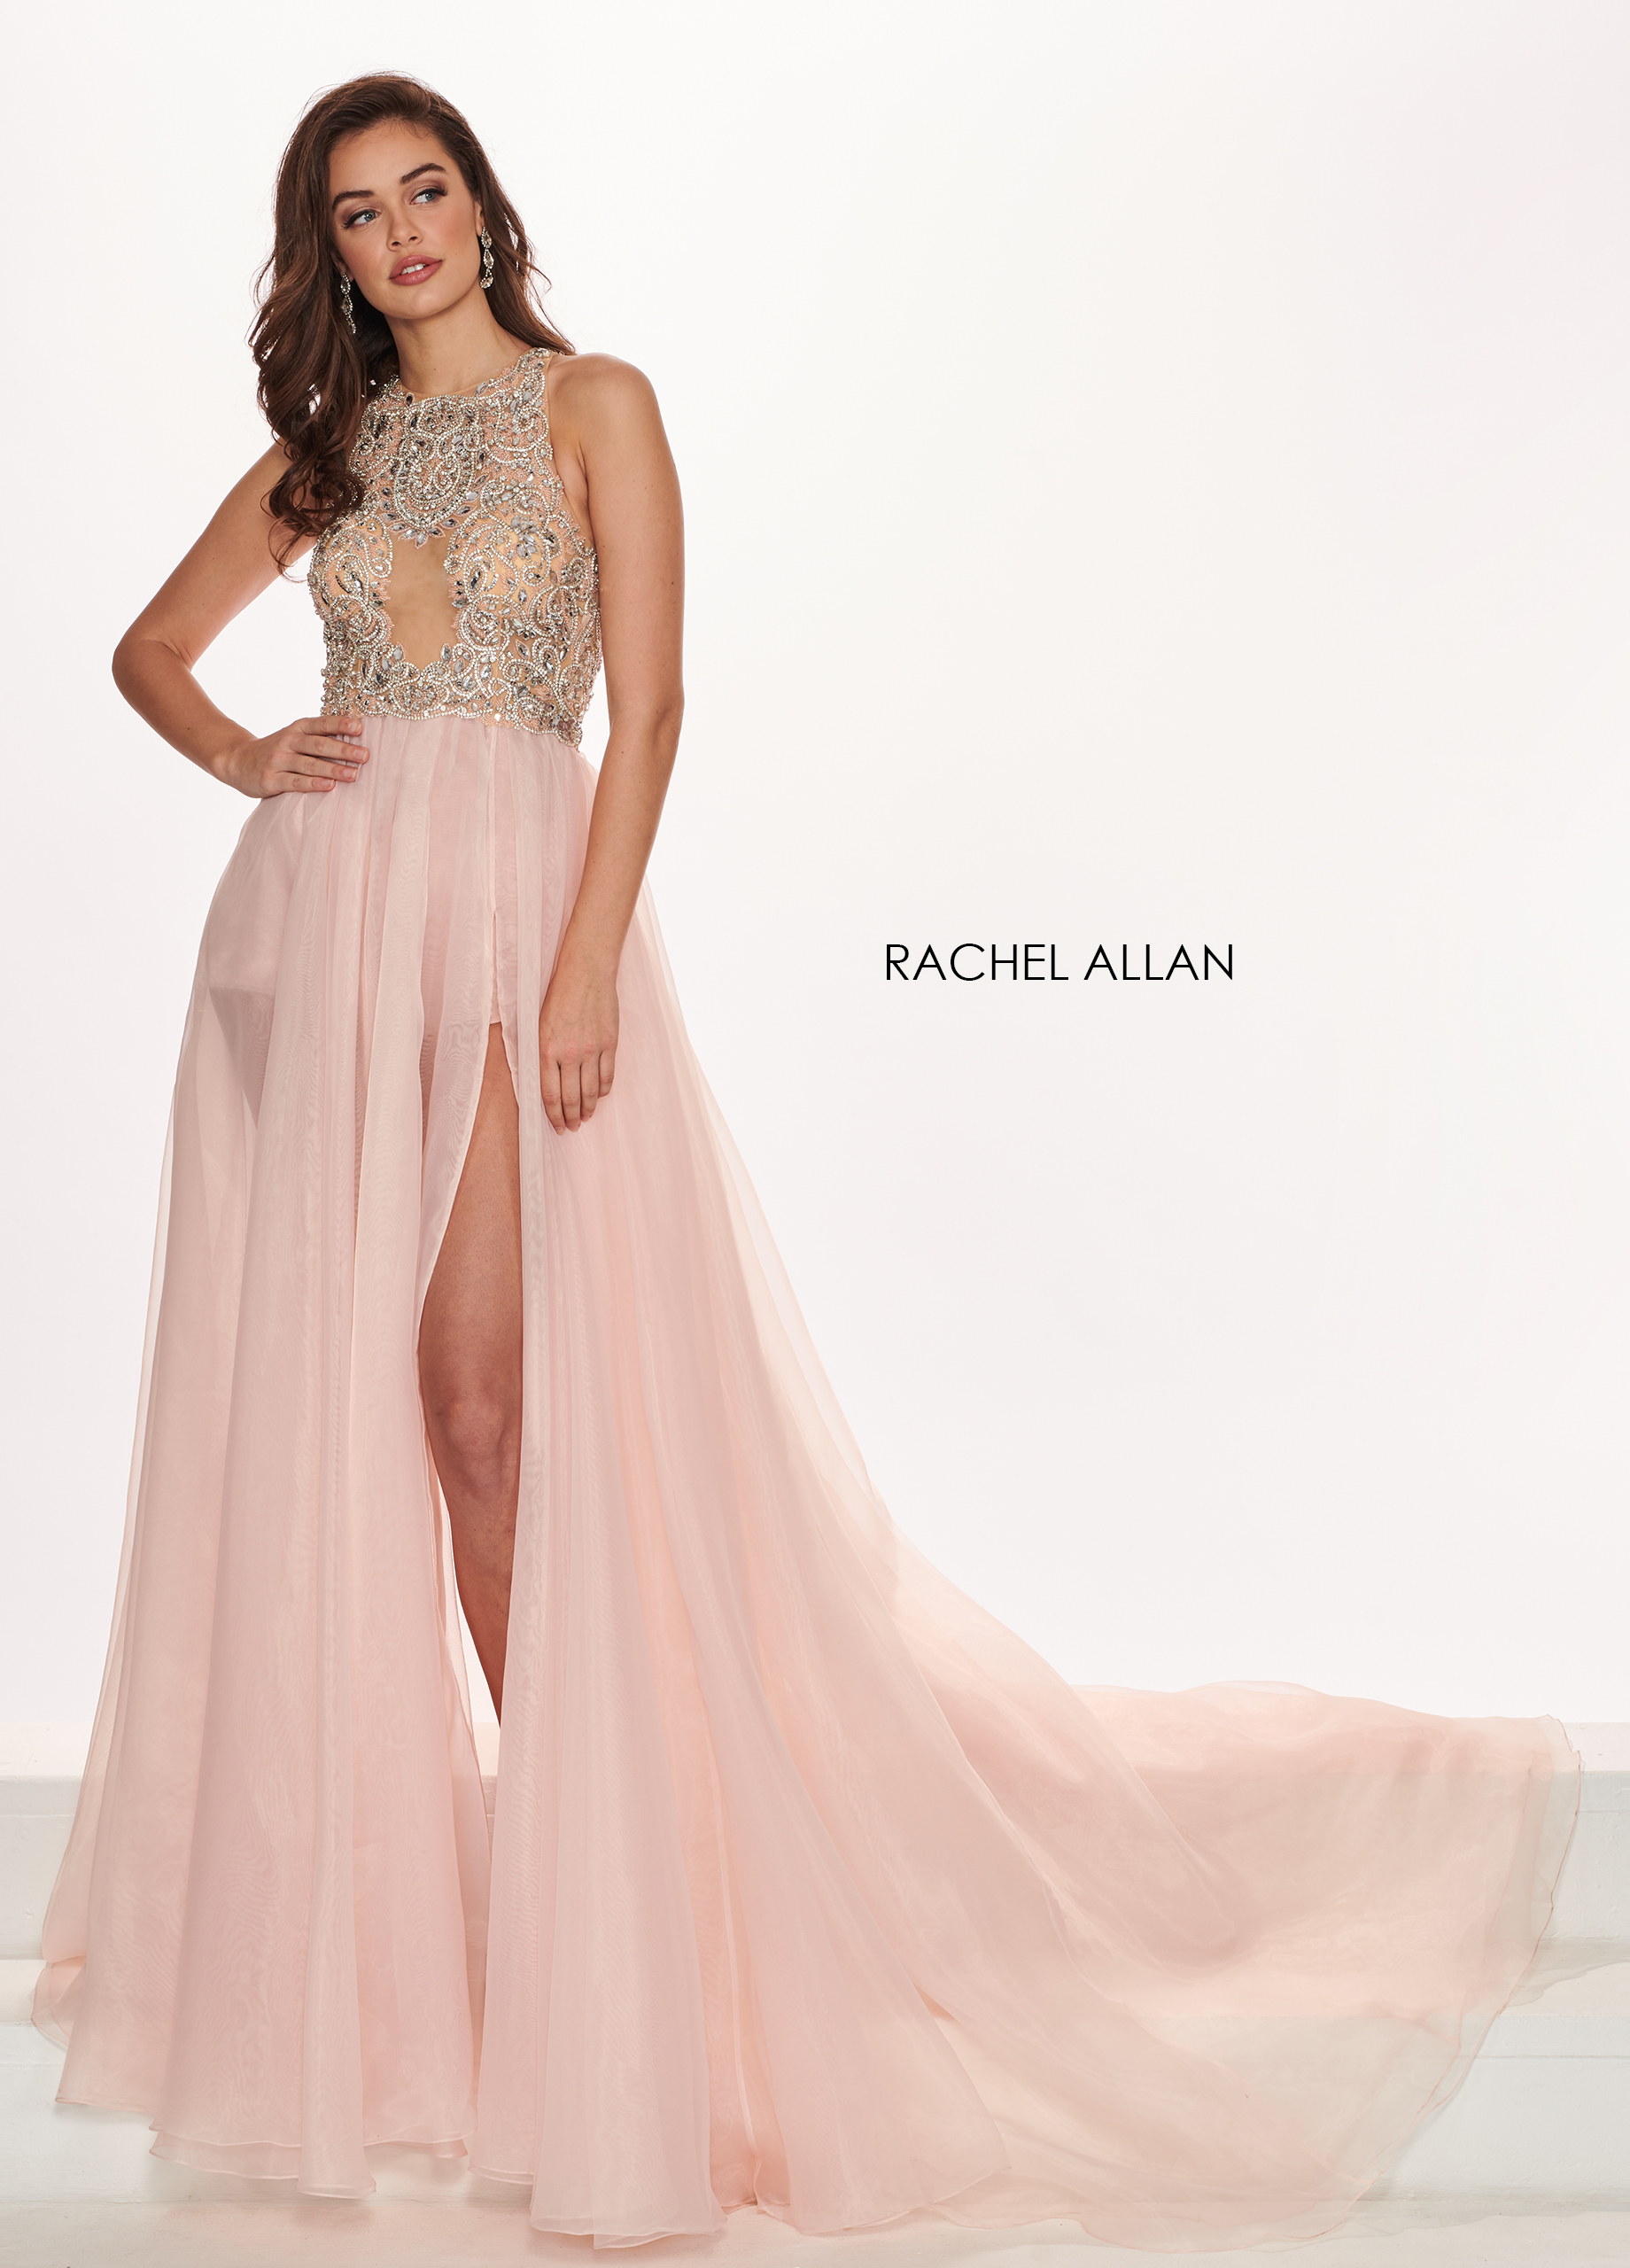 Sheer Shorts With Overlay Pageant Dresses in Pink Color